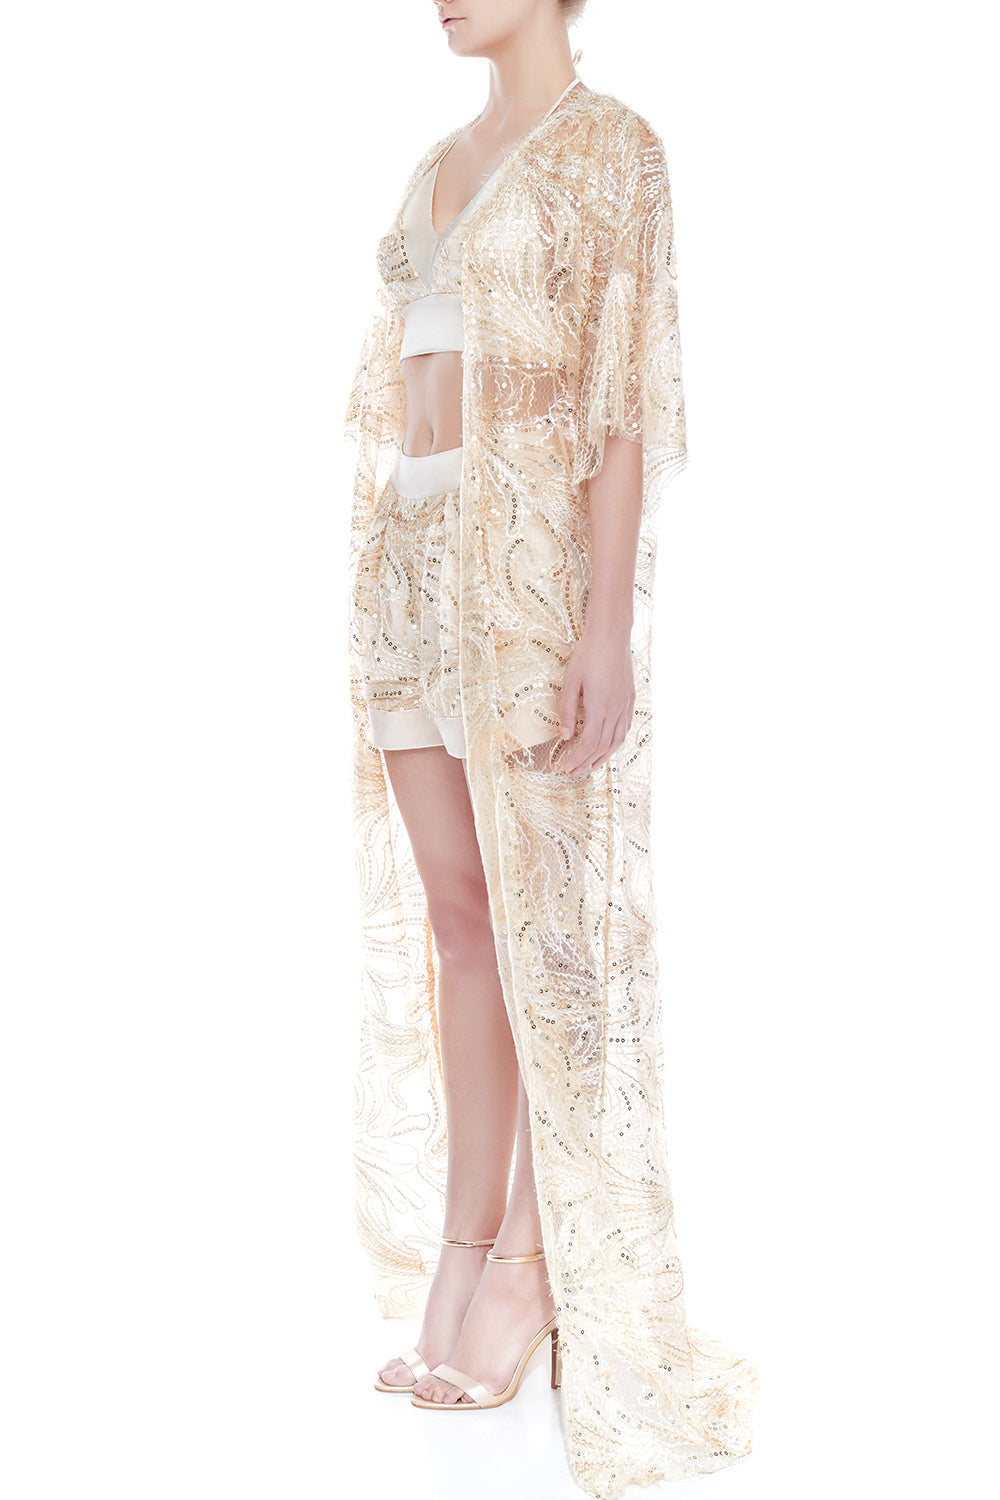 NAOMI Lace Kimono - CHAMPAGNE | SAMPLE - HAUS OF SONG